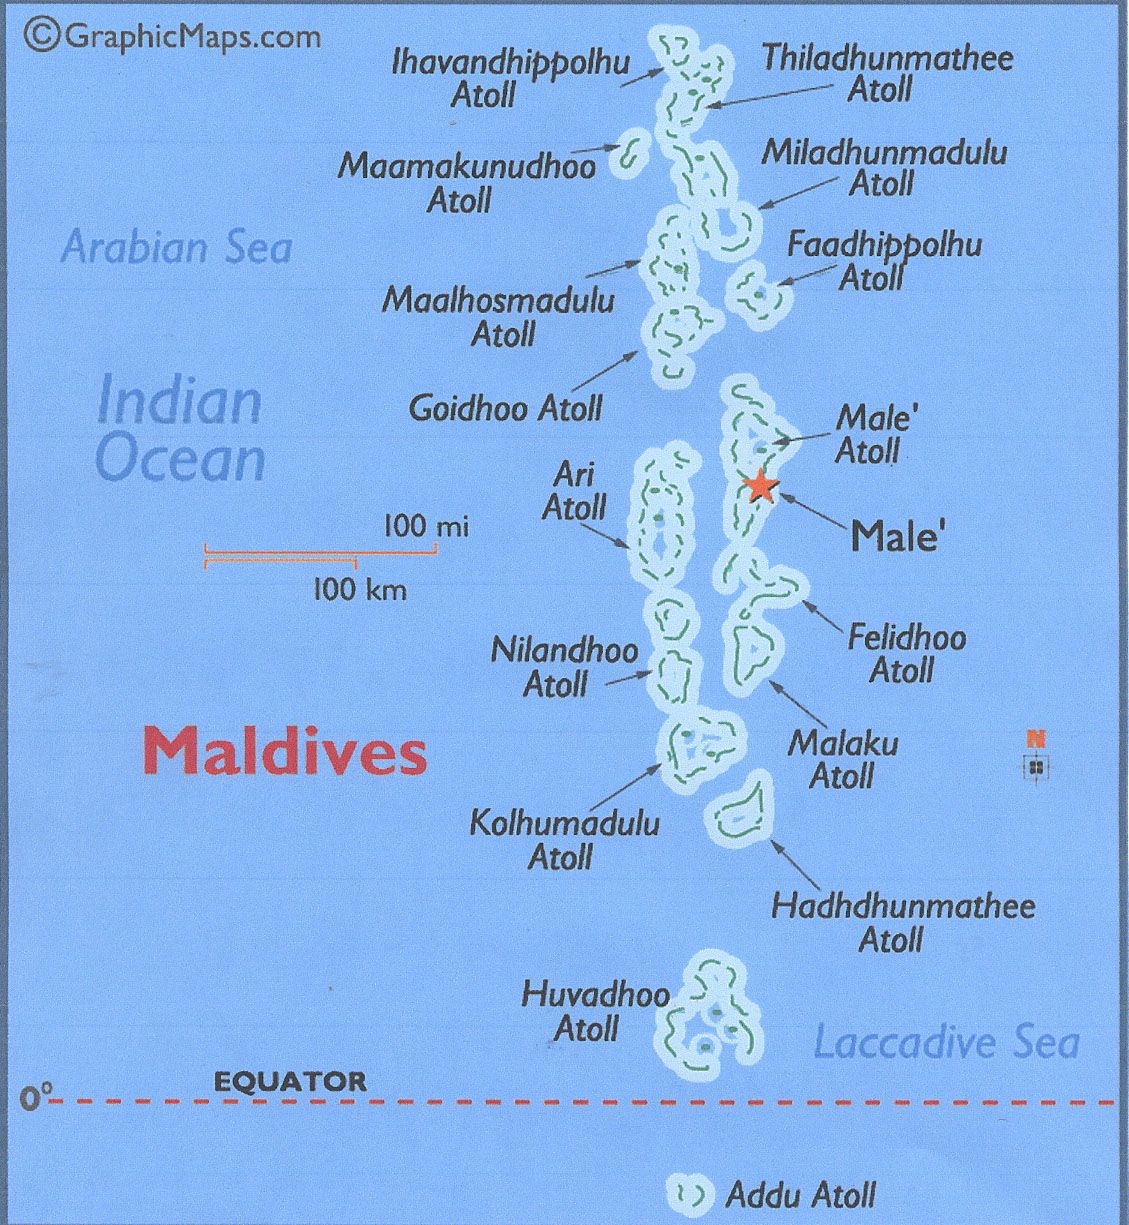 The Maldives Archipelago Map. The Maldives, a group of about ... on business map, maps map, land map, road map, geologic map, serengeti plain africa map, thematic map, climate map, topographical map, on a map, history map, european map, middle east resource map, science map, topological map, physical map, global map, geographic map, political map, physiographic map,